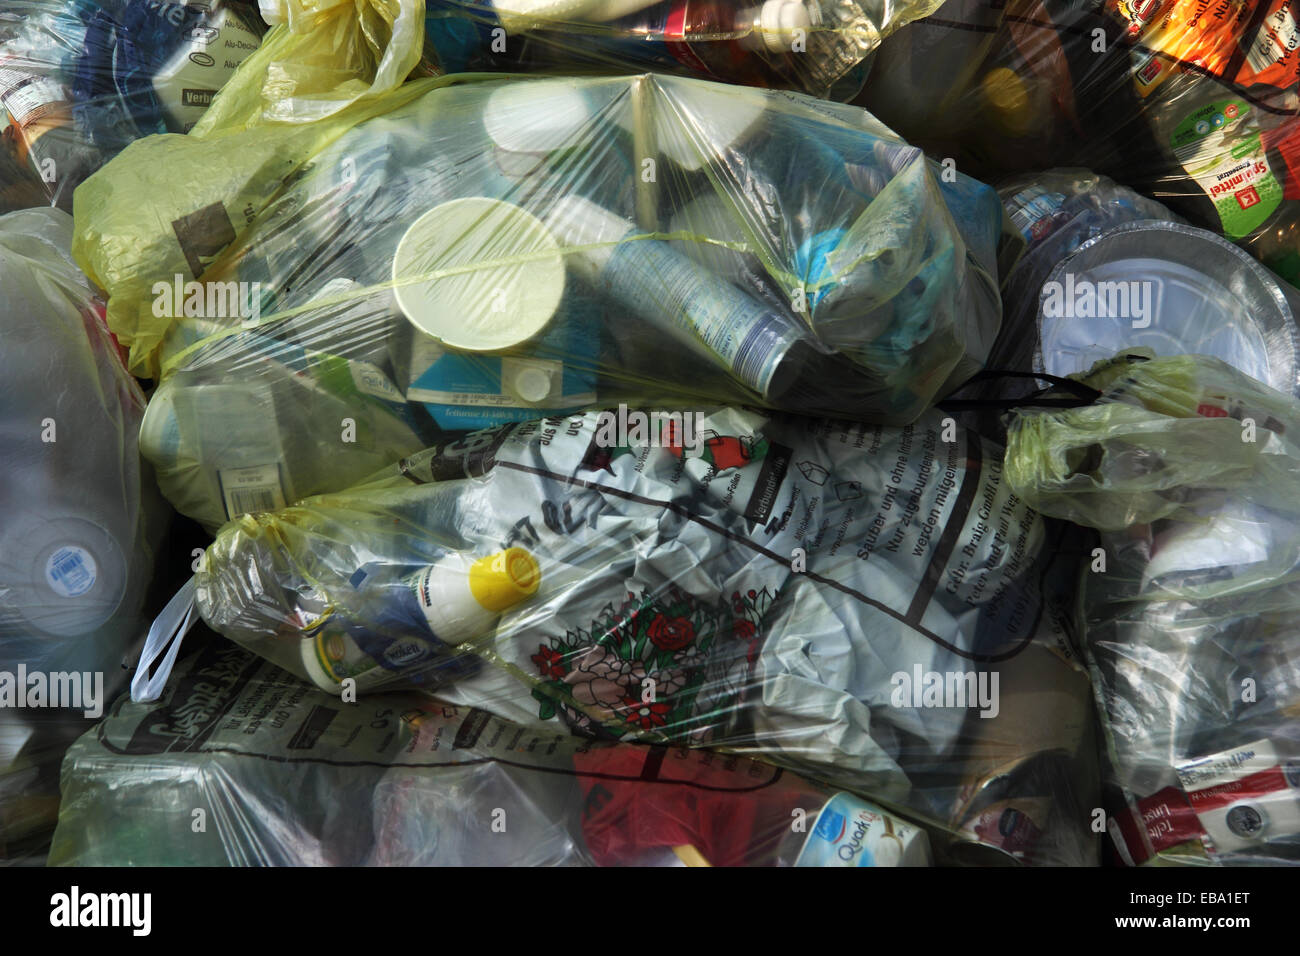 Yellow garbage bags, recycling sacks for the collection of recyclable packaging material, Biberach an der Riss, - Stock Image